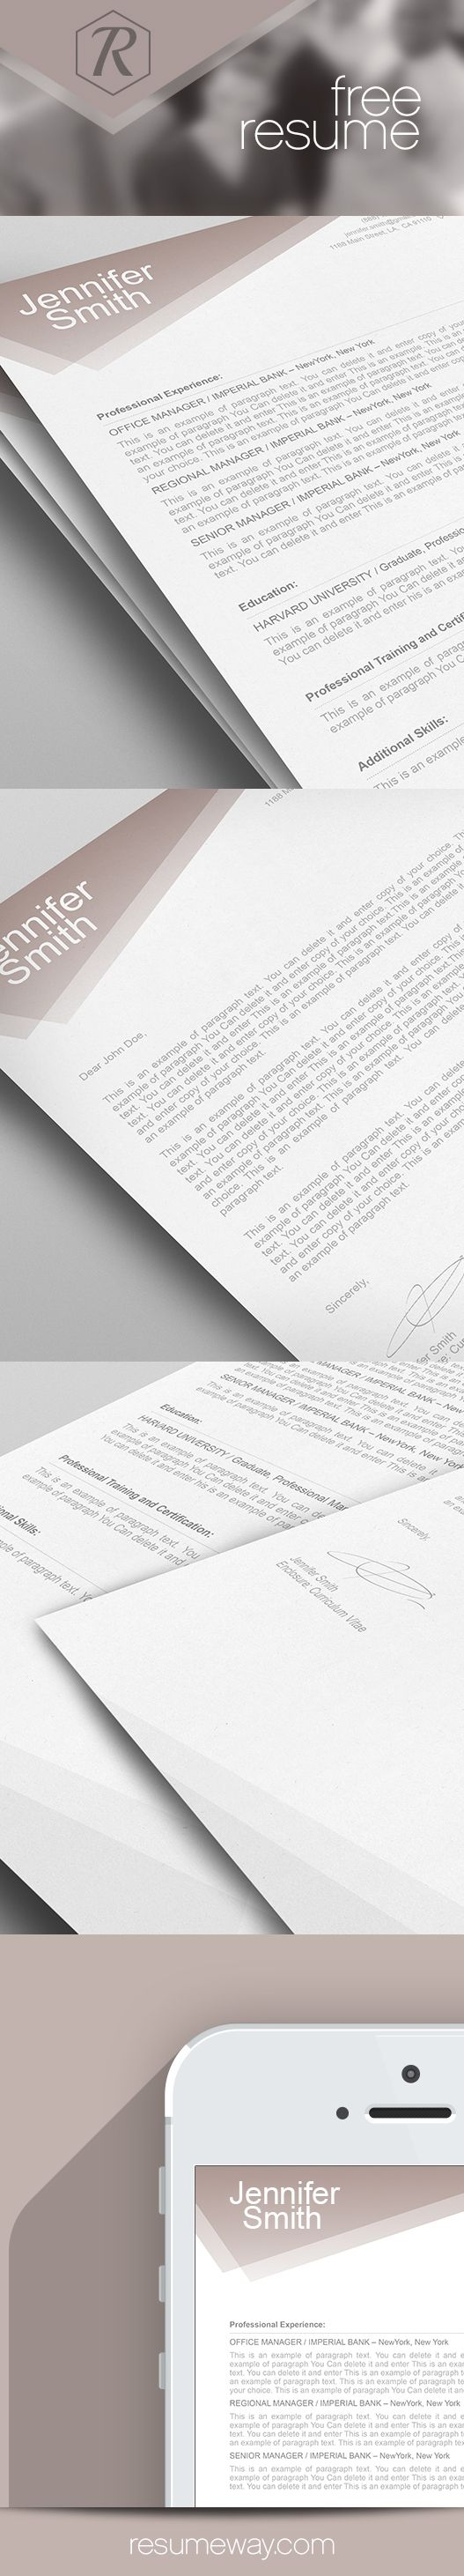 Free Resume Template 1100010 14 best FREE